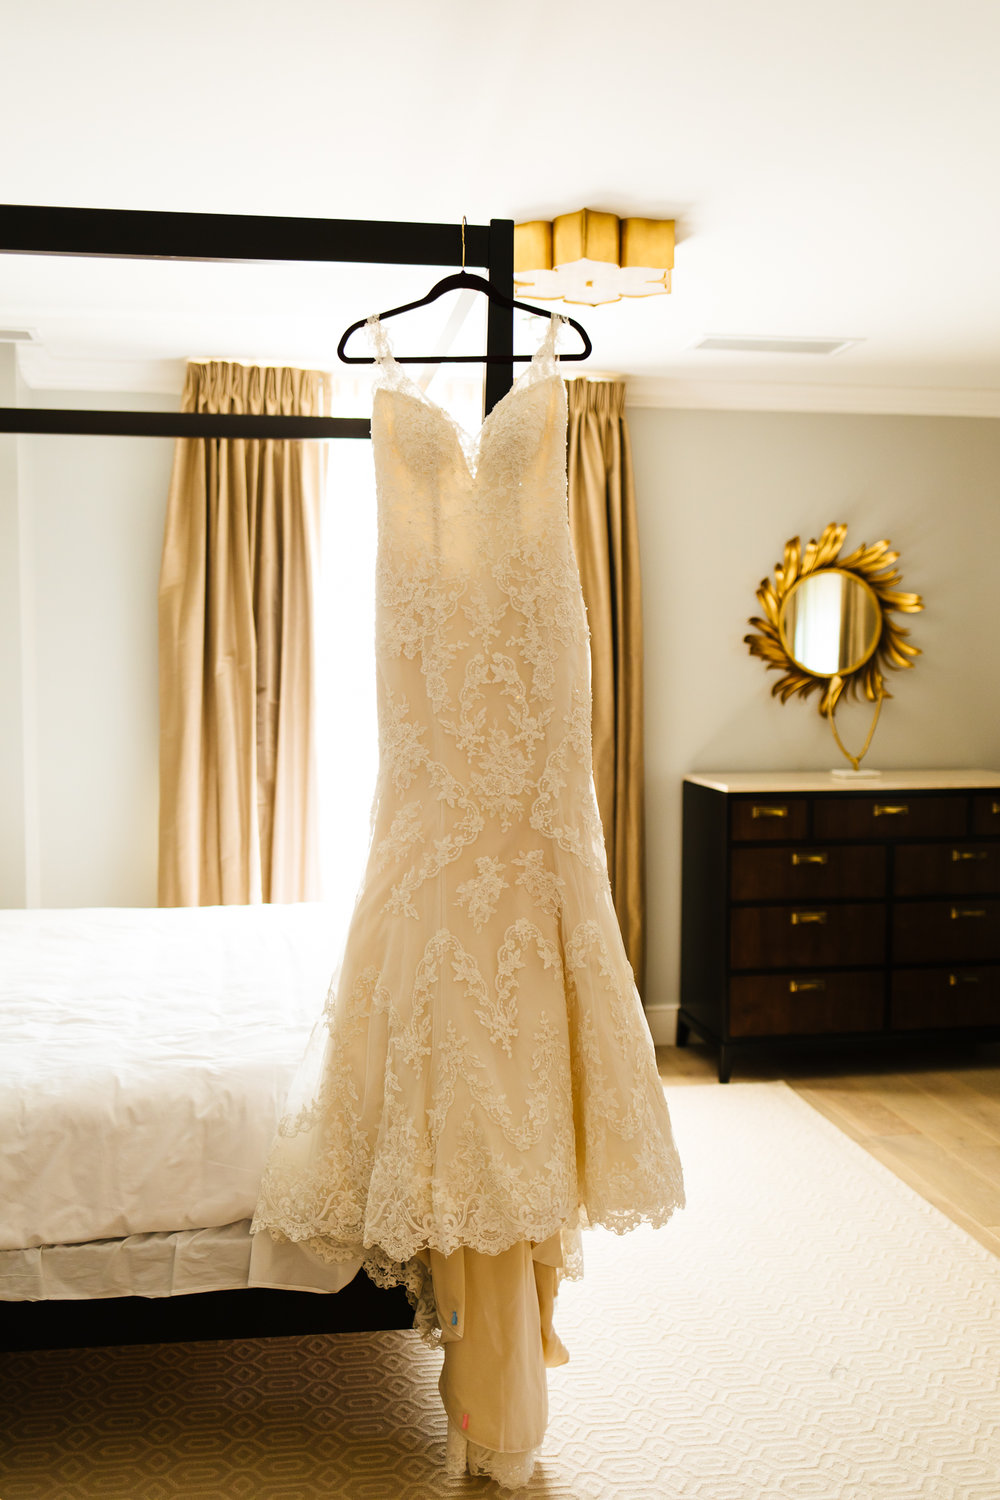 White Maggie Sottero wedding gown hanging from a bed. Image by Calypso Rae Photography